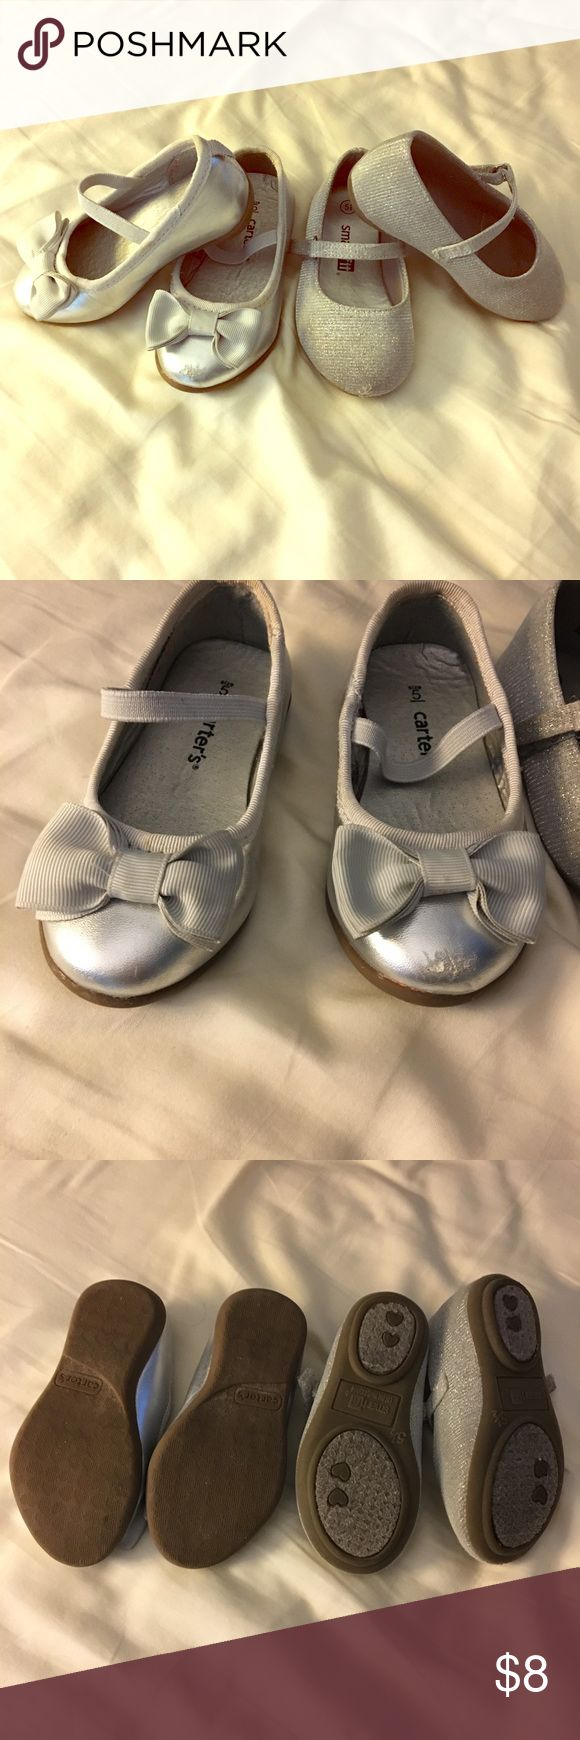 Toddler silver dress shoes Two pair of dress shoes. Silver with bow: Carters size 5. Silver glitter: Smart Fit size 5.5. Both have toe scuffs. Shoes Dress Shoes